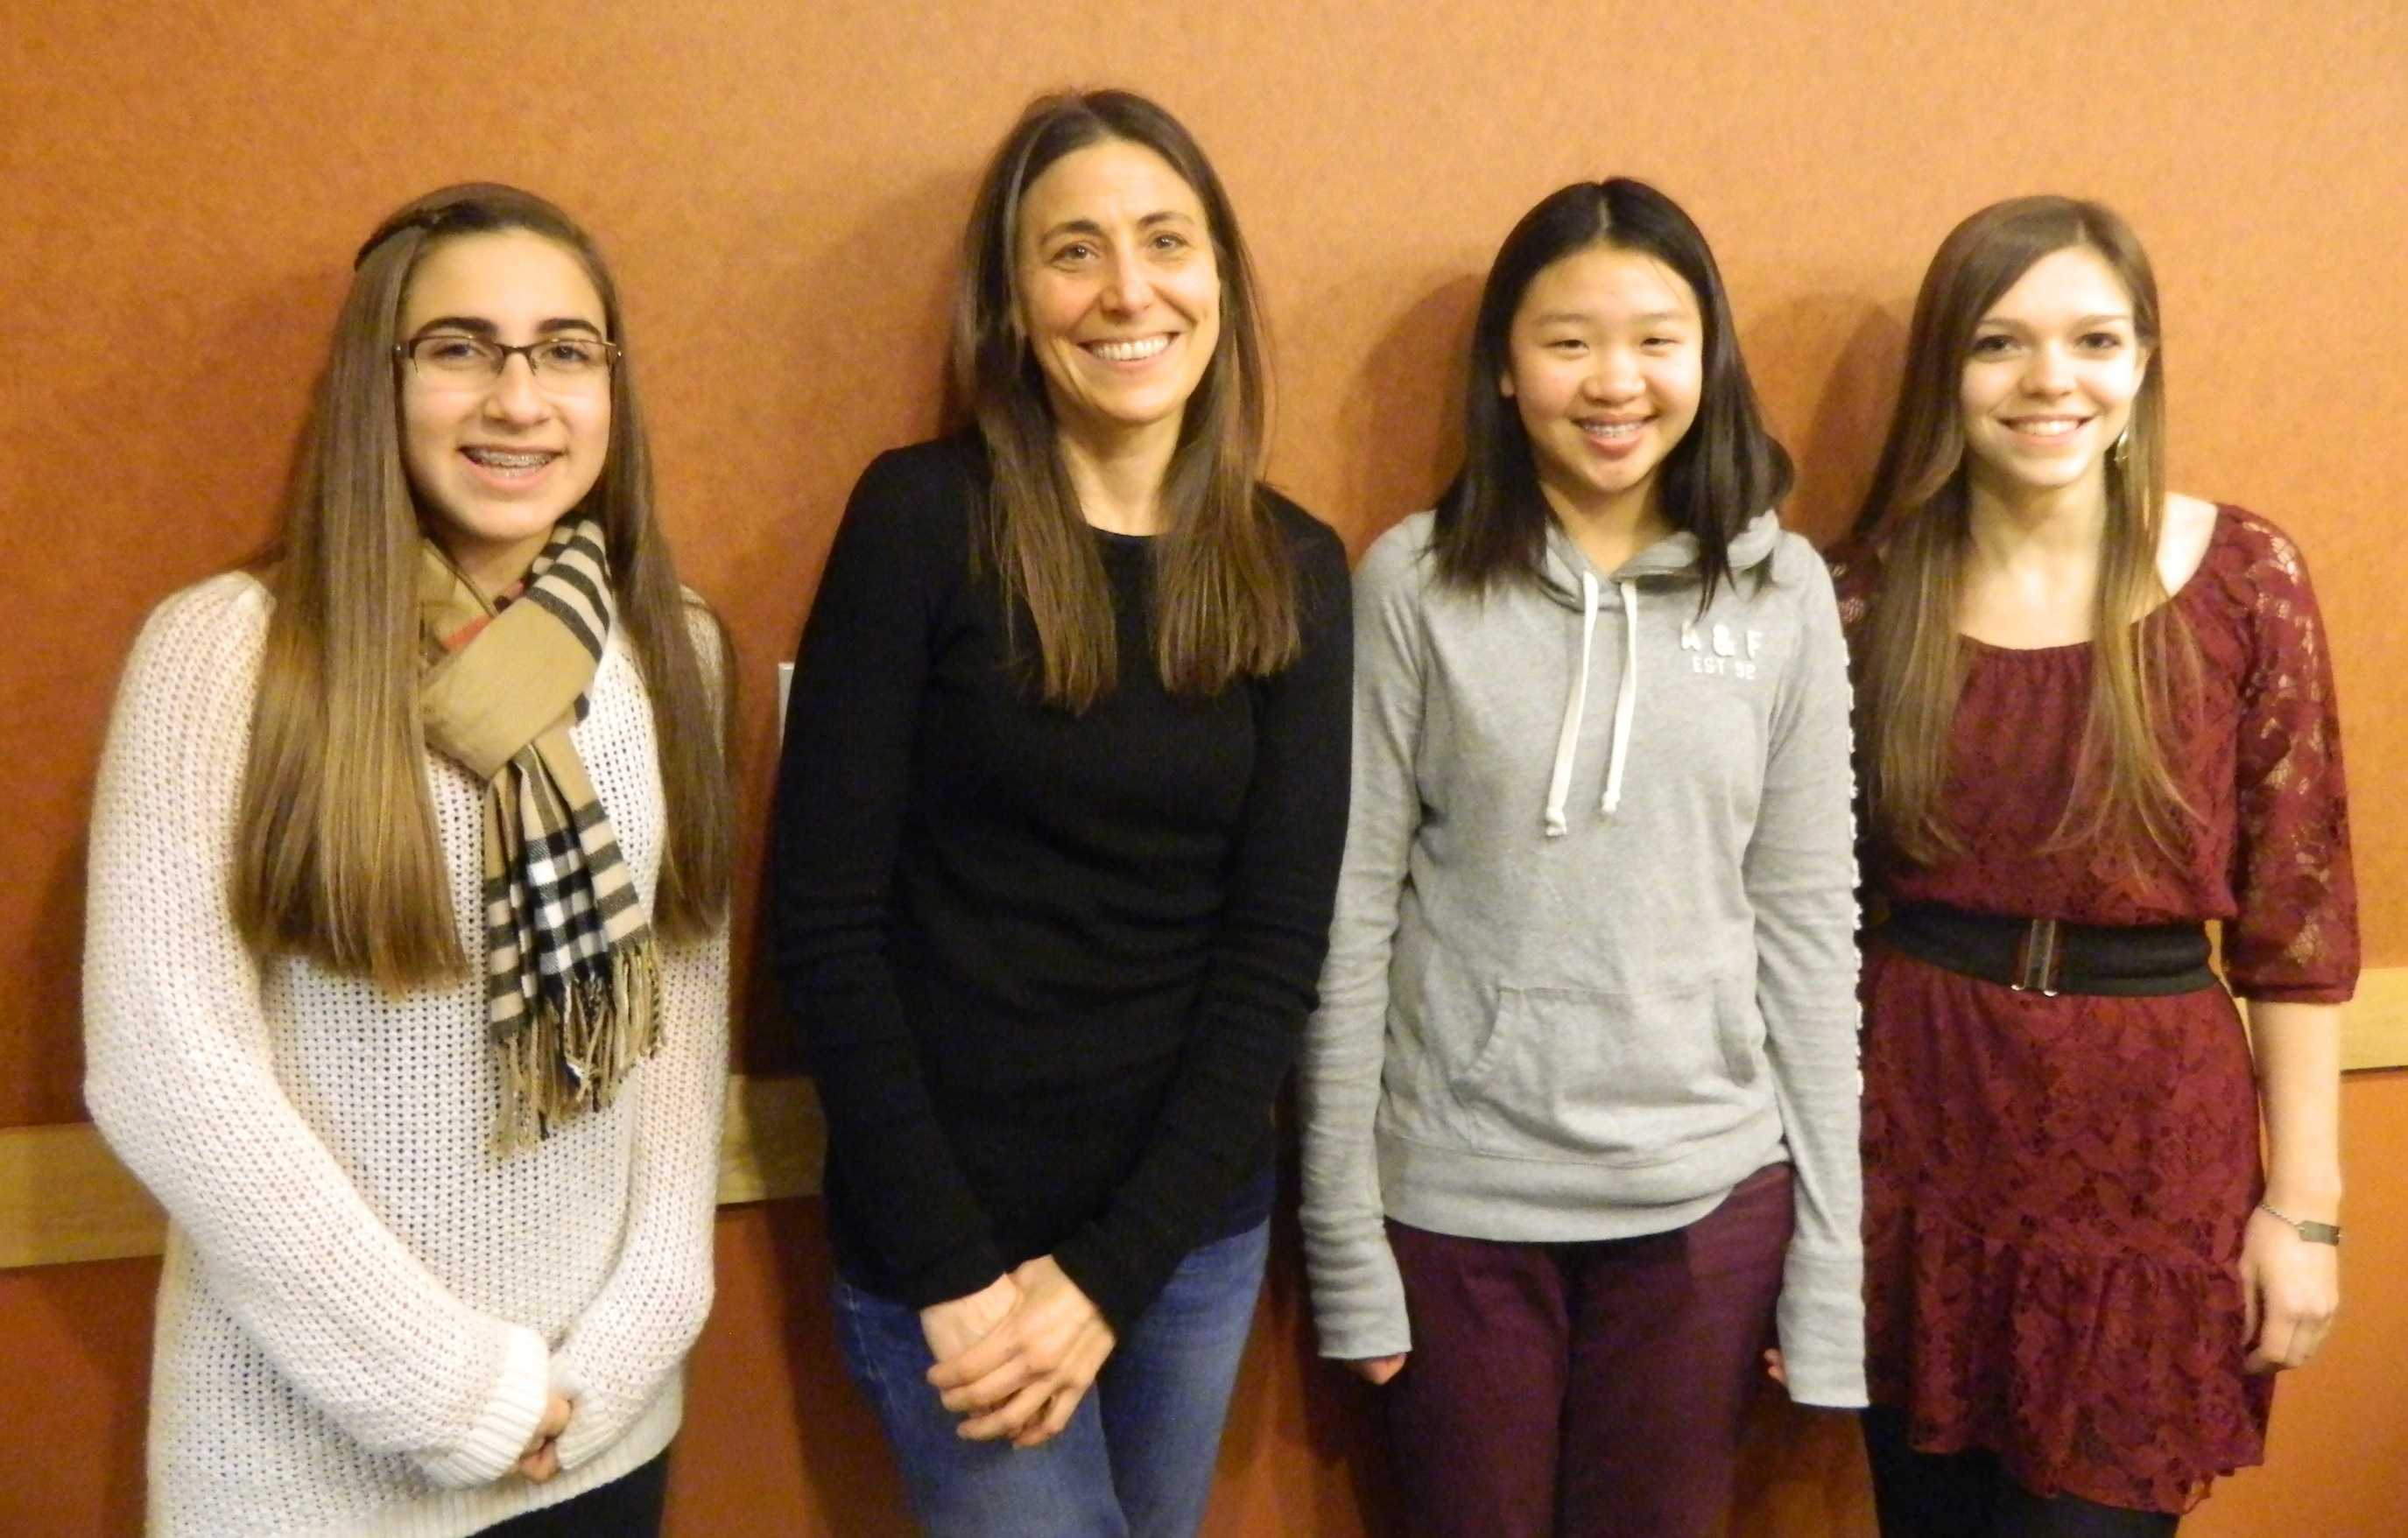 Rebecca Stead (second from left) poses with reporters from the Watertown public school newspapers during the author's visit to Lesley University in Cambridge, Mass., on Jan. 8, 2014.